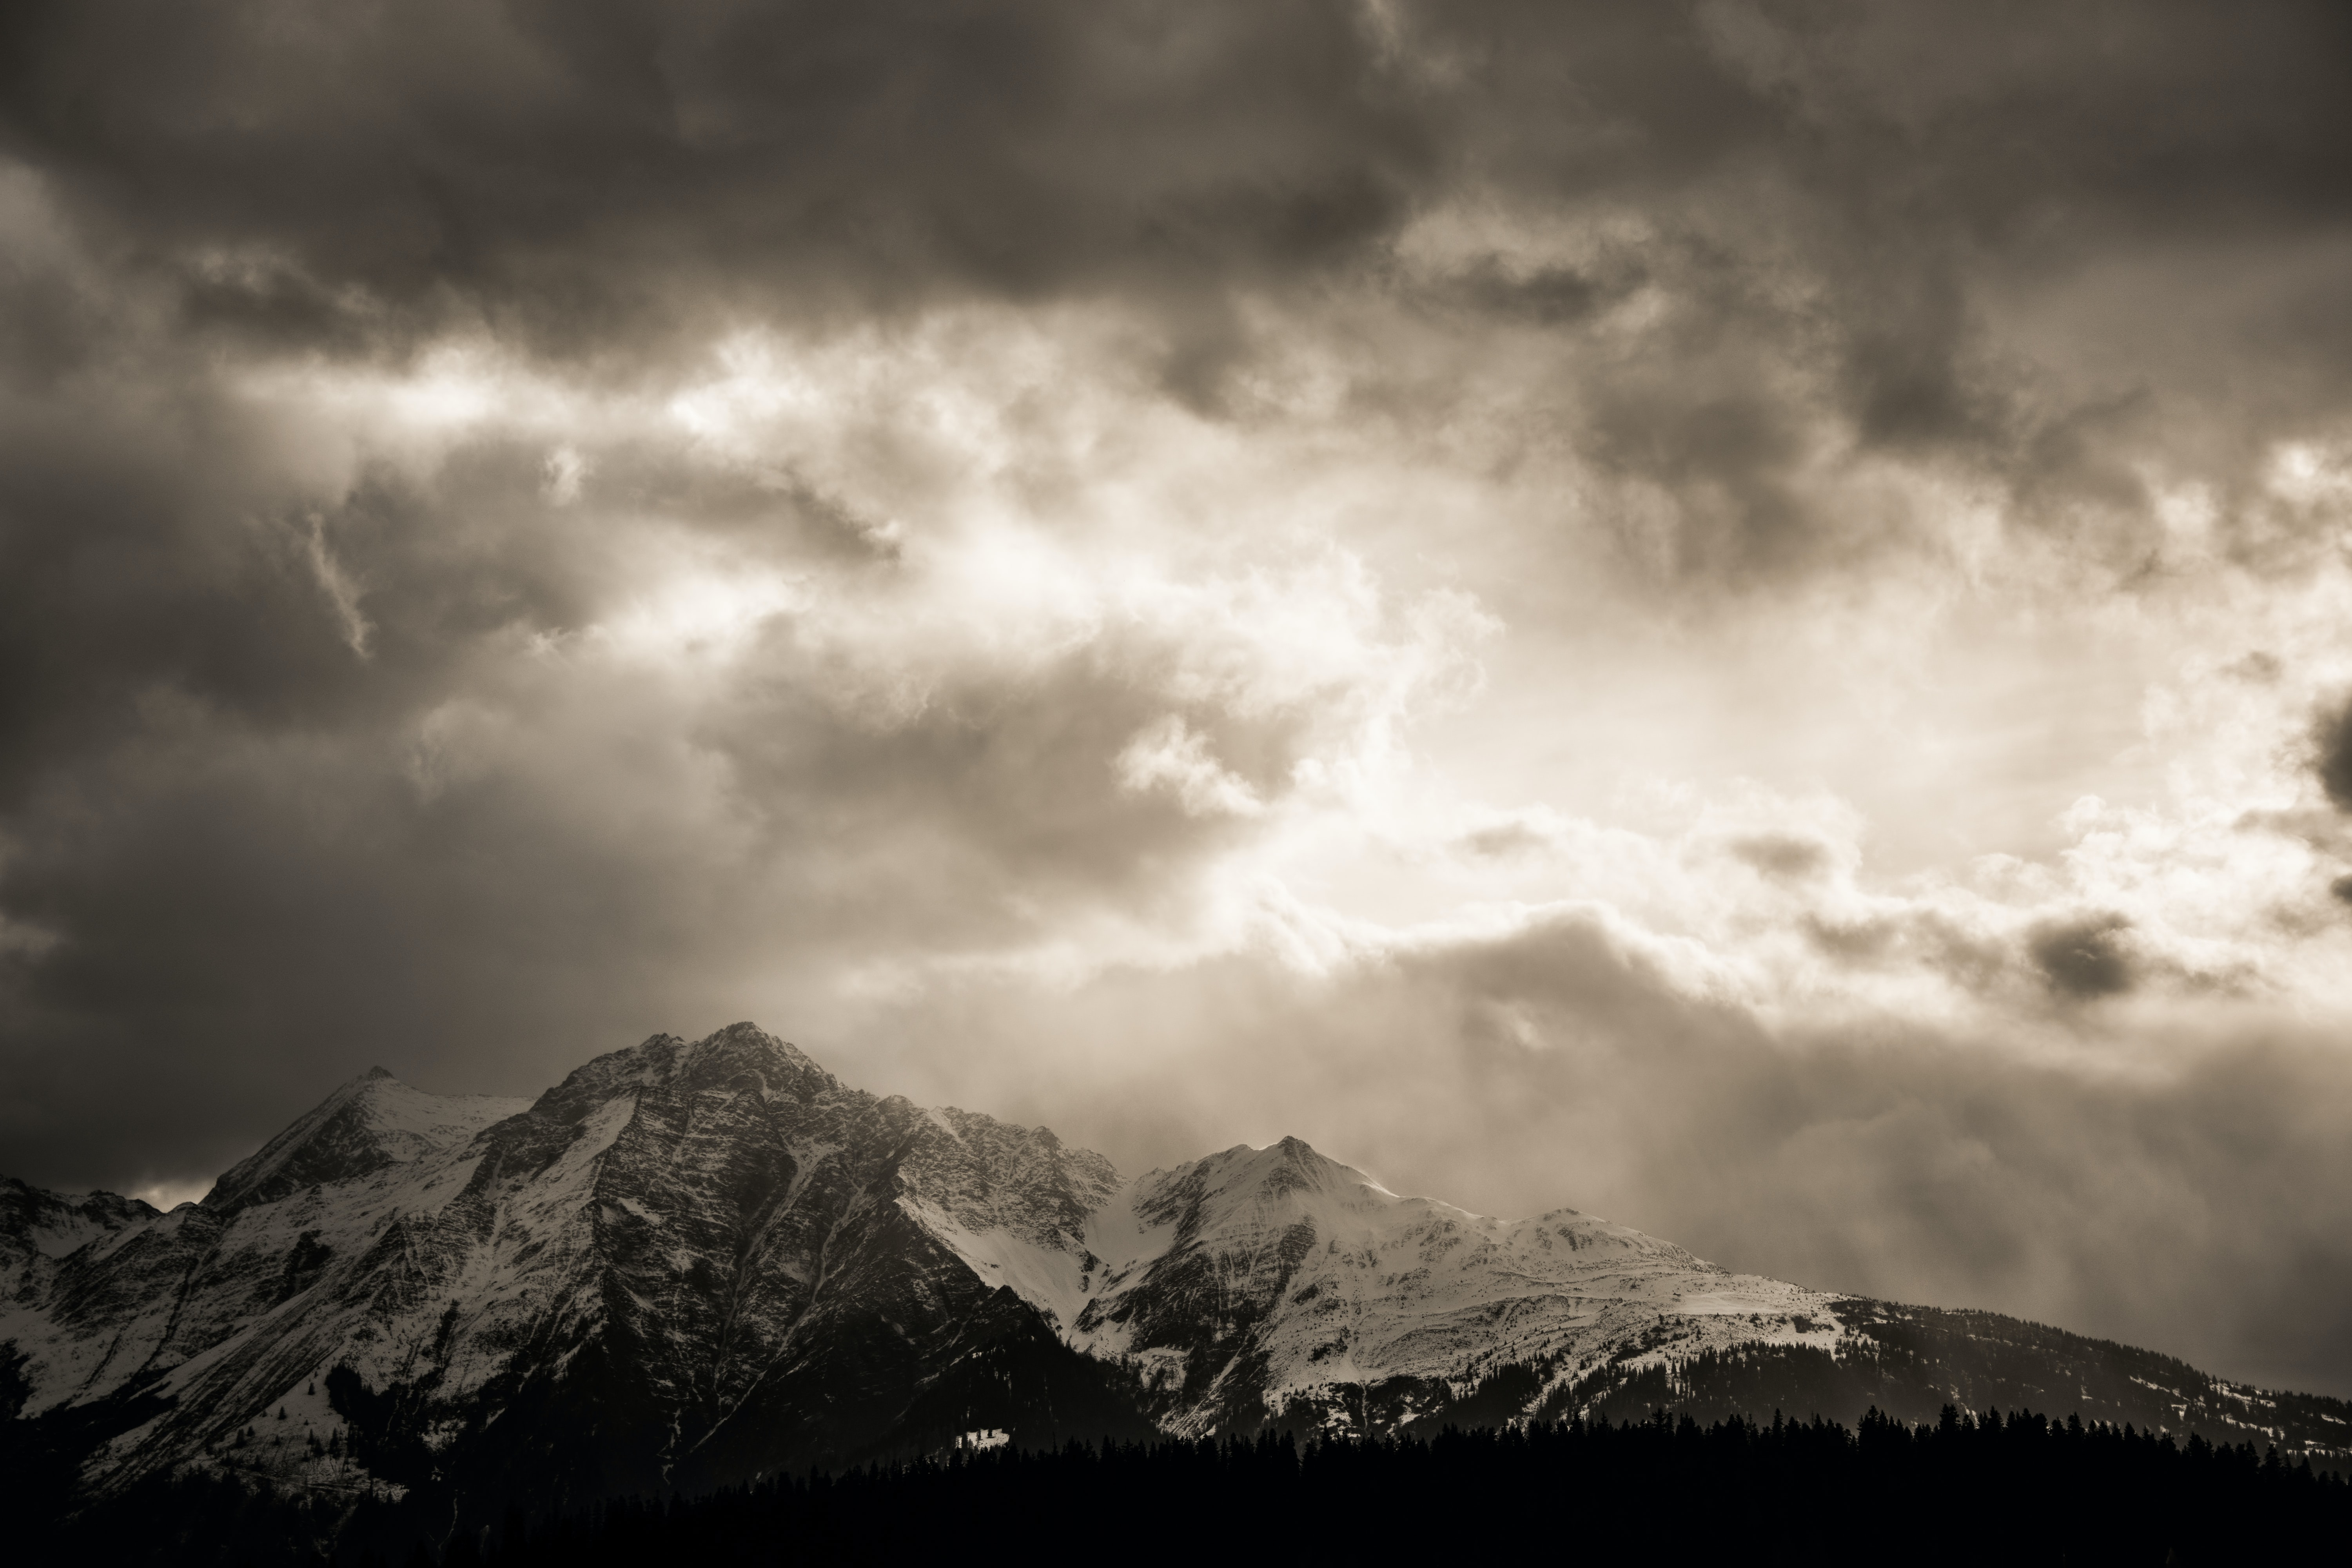 A desaturated shot of an overcast sky over a snowy mountain range in Flims